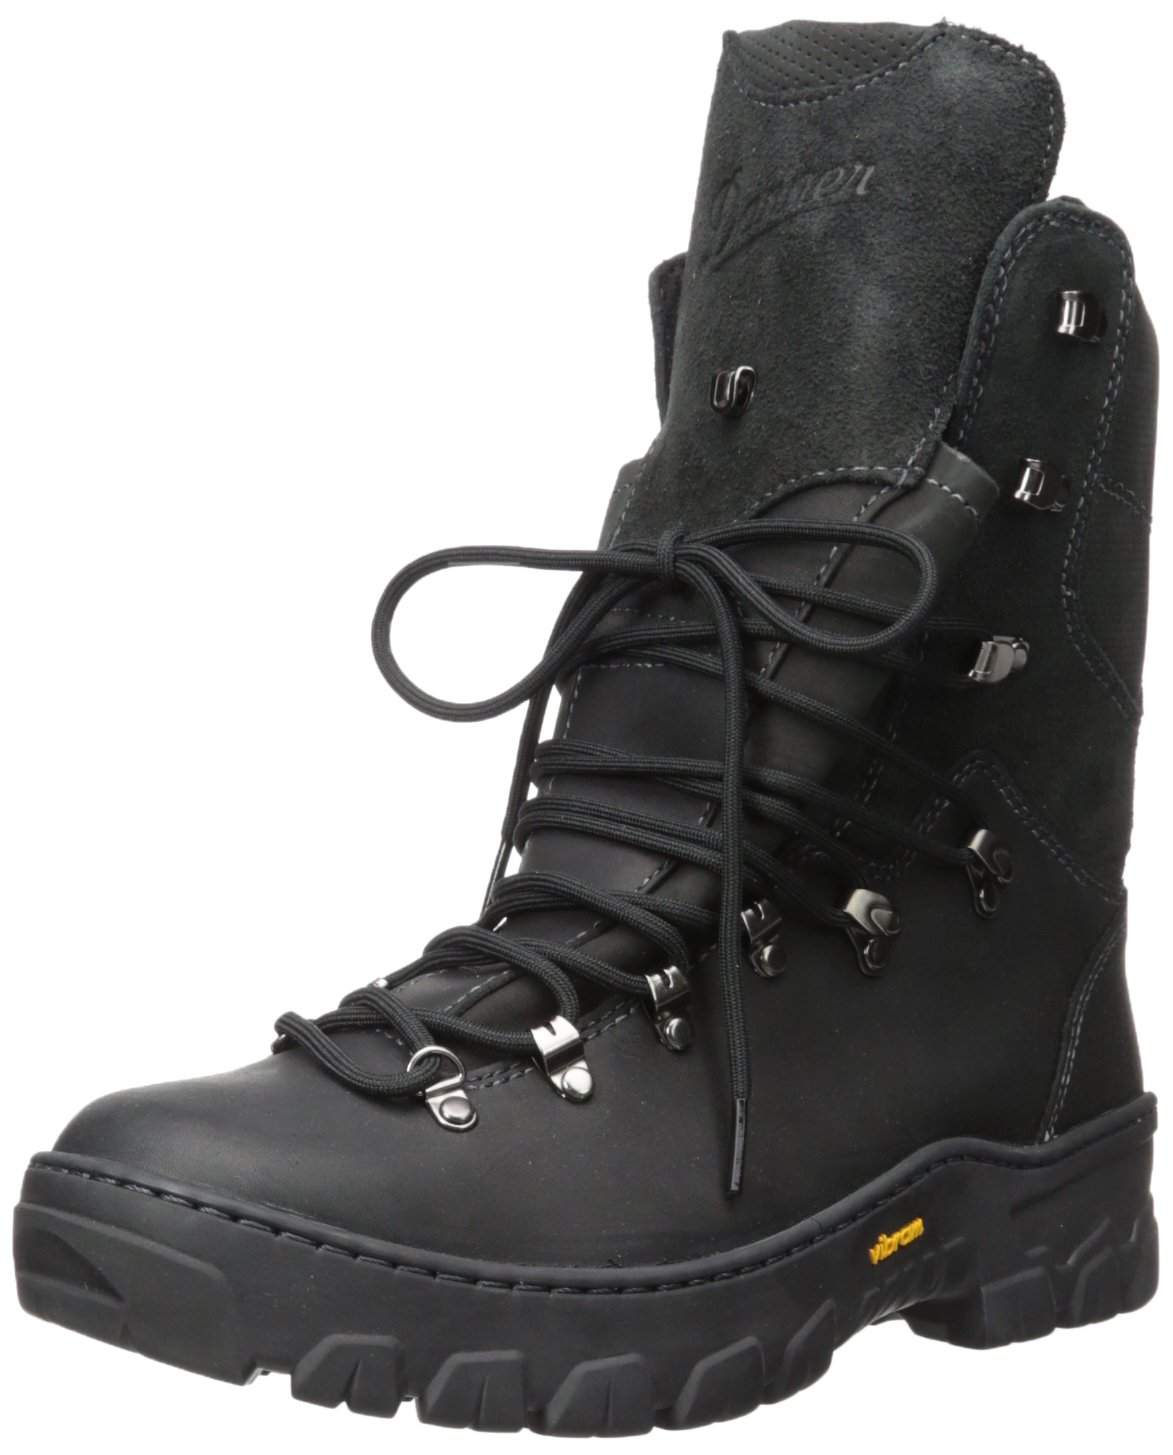 Danner Men's Wildland Tactical Firefighter 8'' Fire and Safety Boot, Black Smooth-Out Out, 9.5 B US